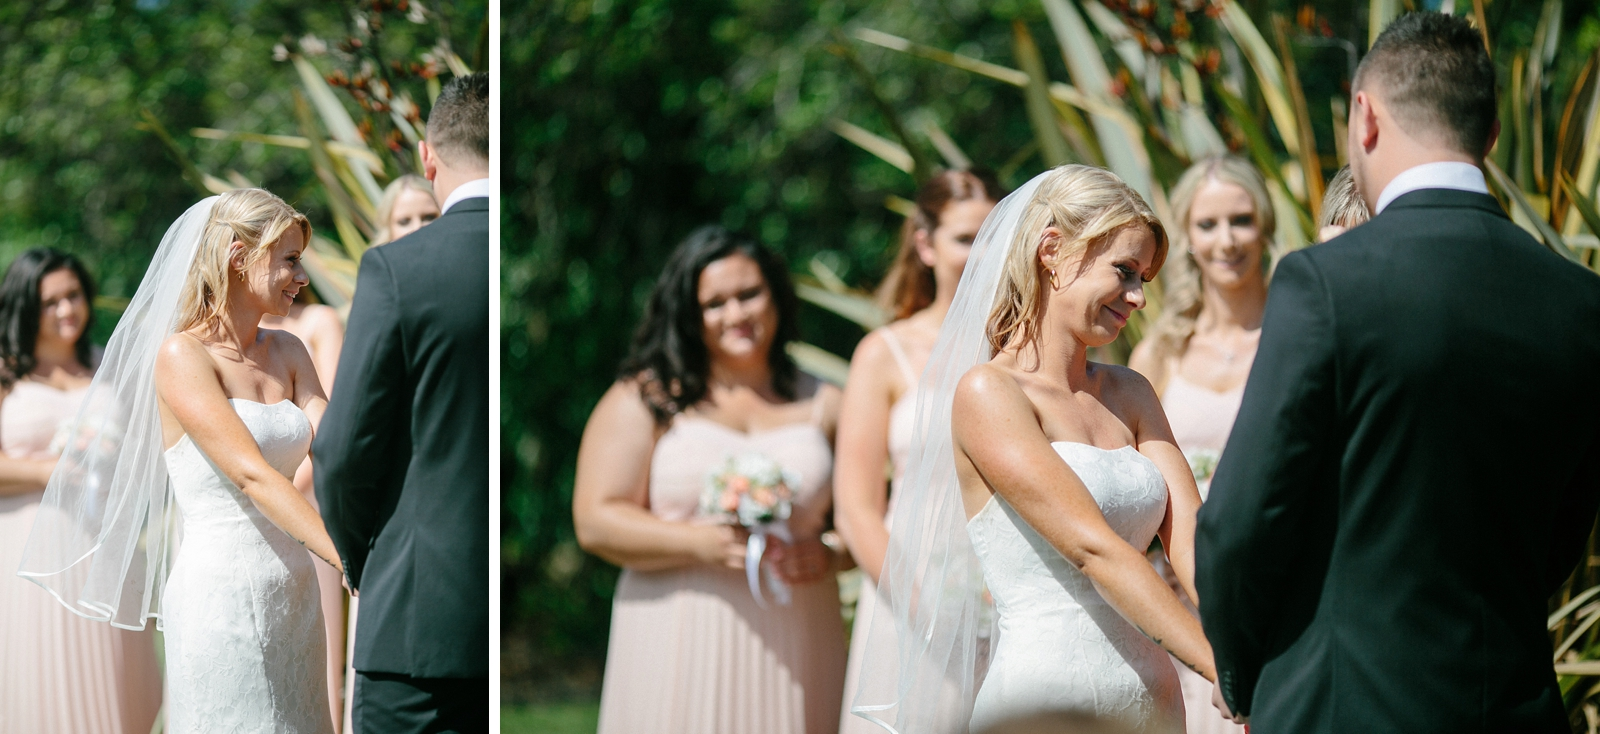 ConnorLaura_Auckland Wedding Photographer_Patty Lagera_0054.jpg